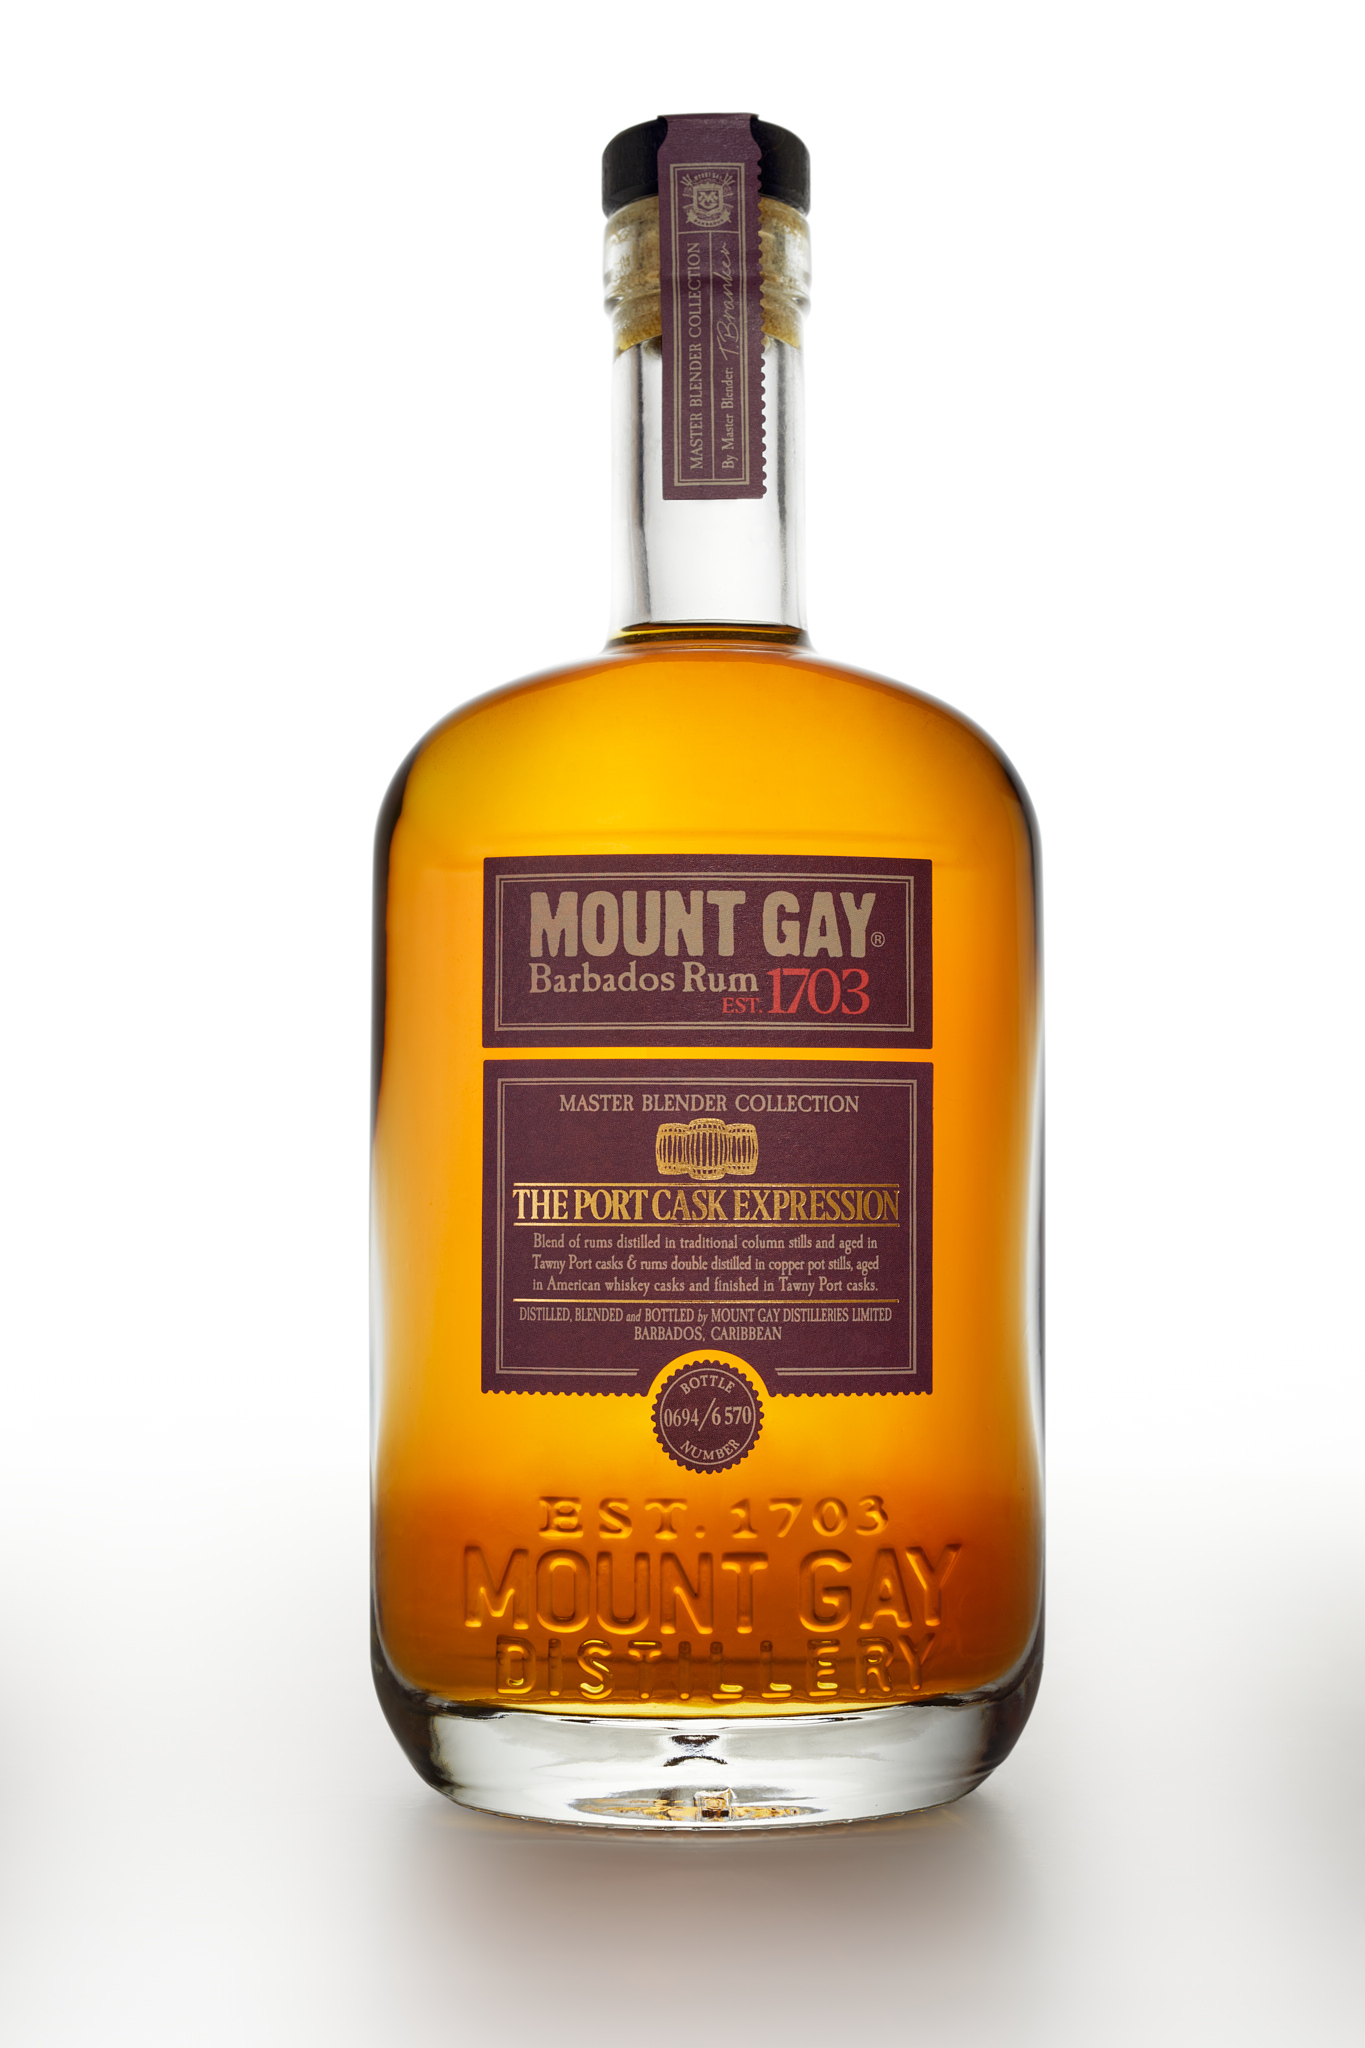 The Port Cask Expression